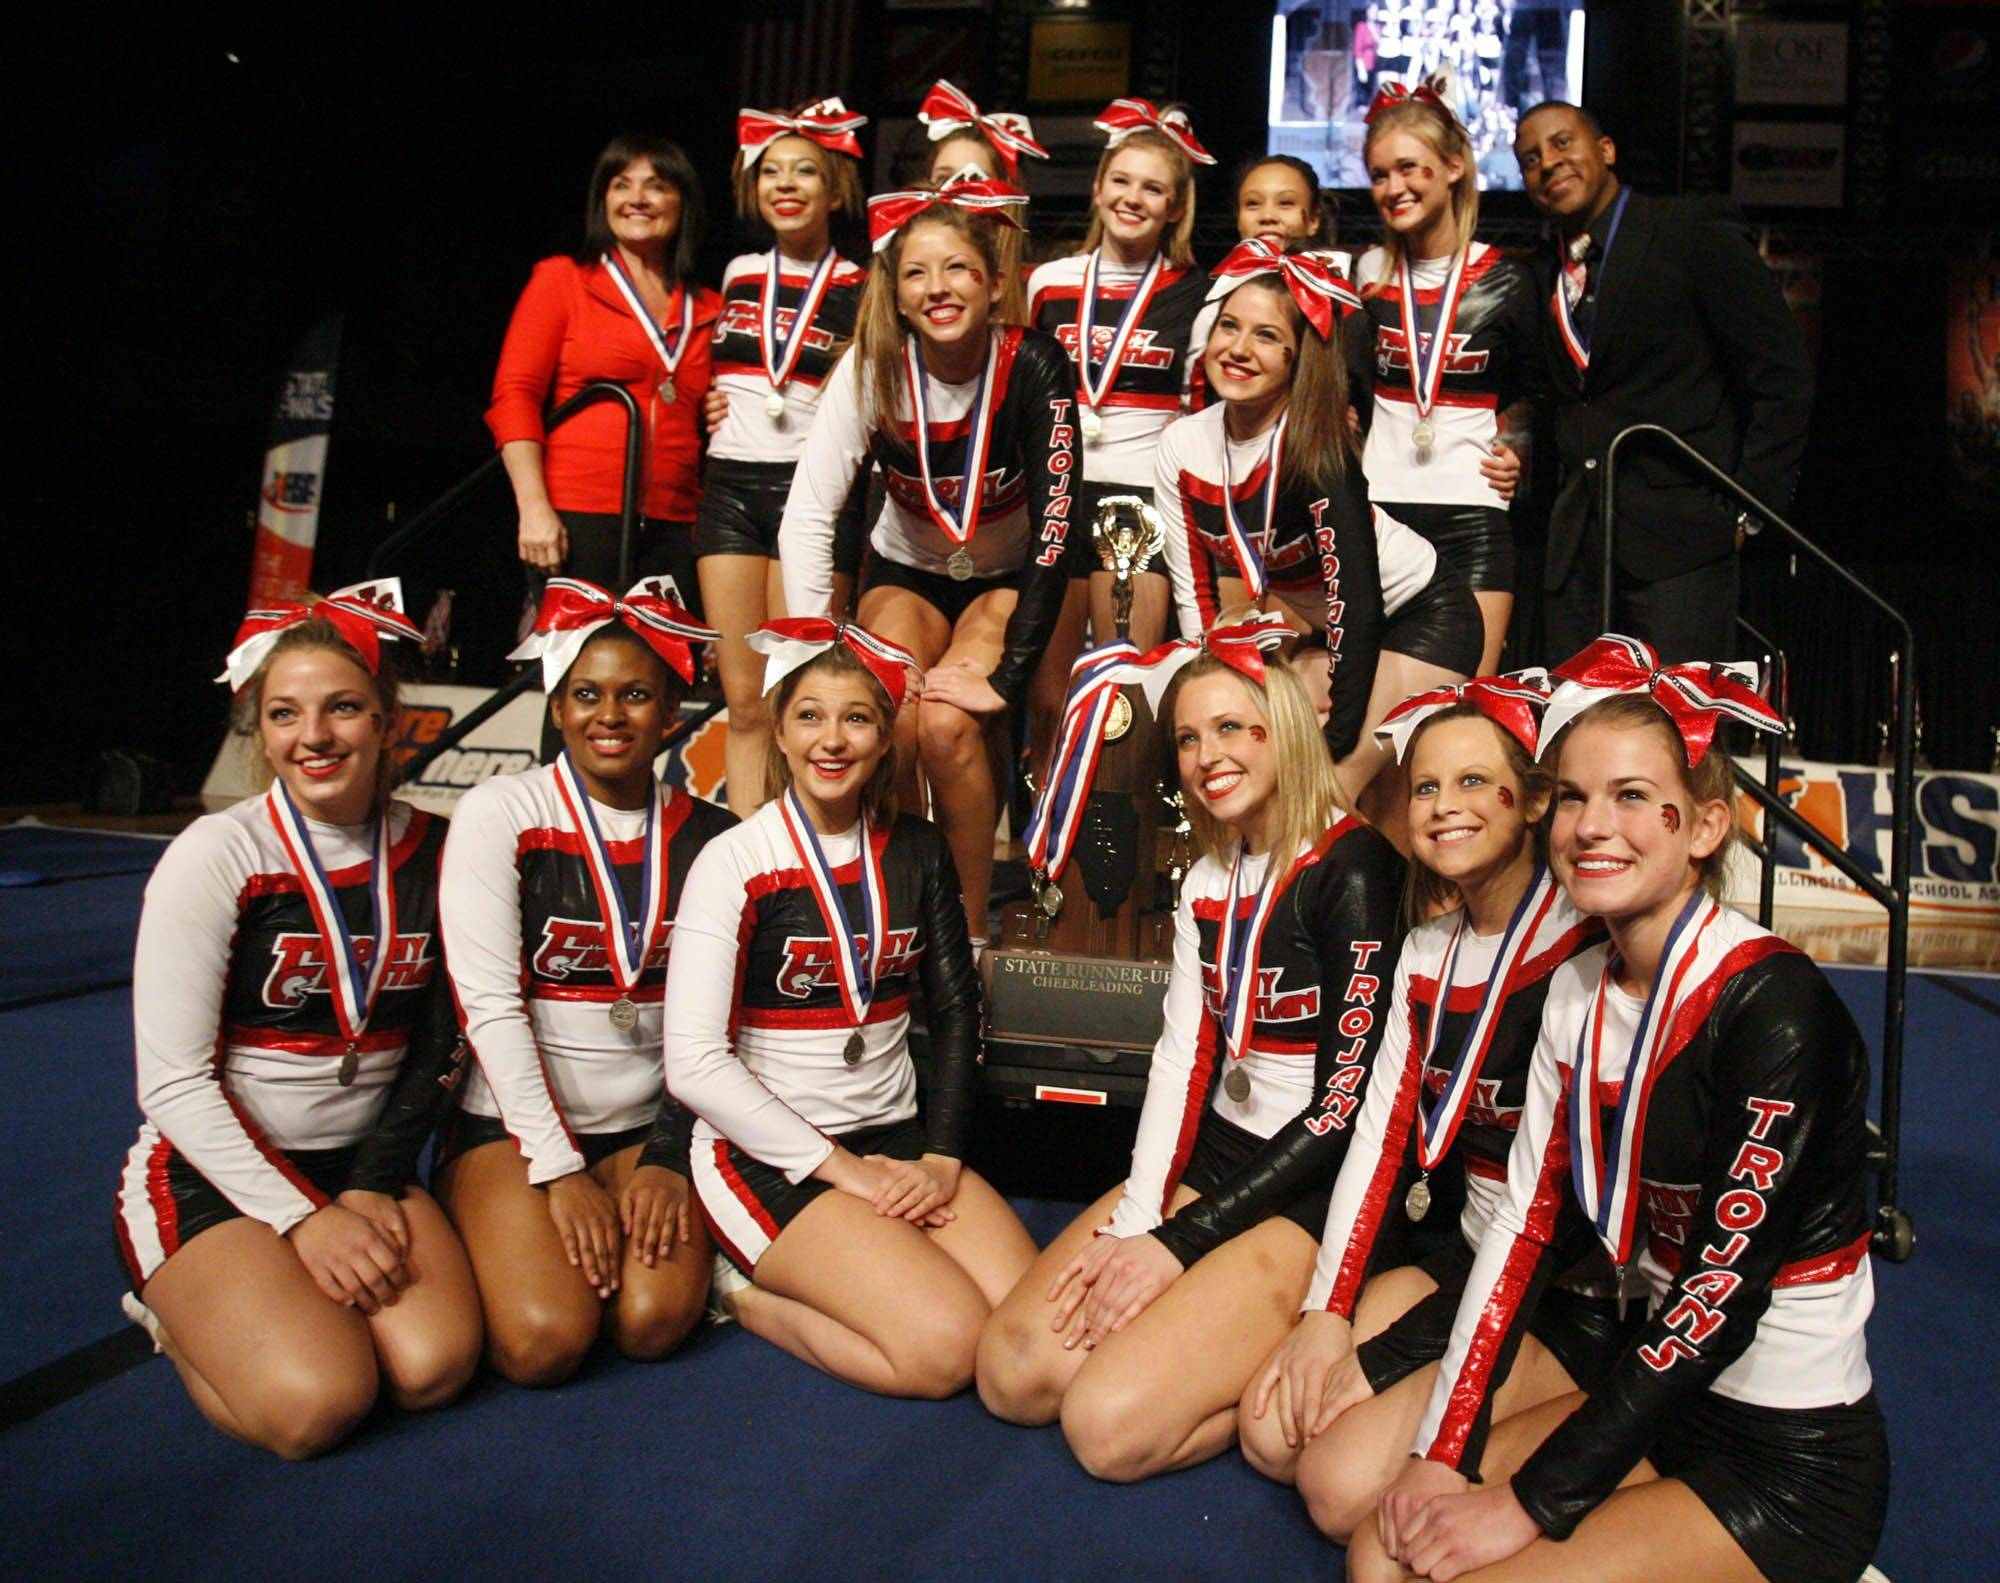 Timothy Christian with the second place at IHSA cheerleading state finals for the small school category at U.S. Cellular Coliseum in Bloomington on Saturday, February 4th.